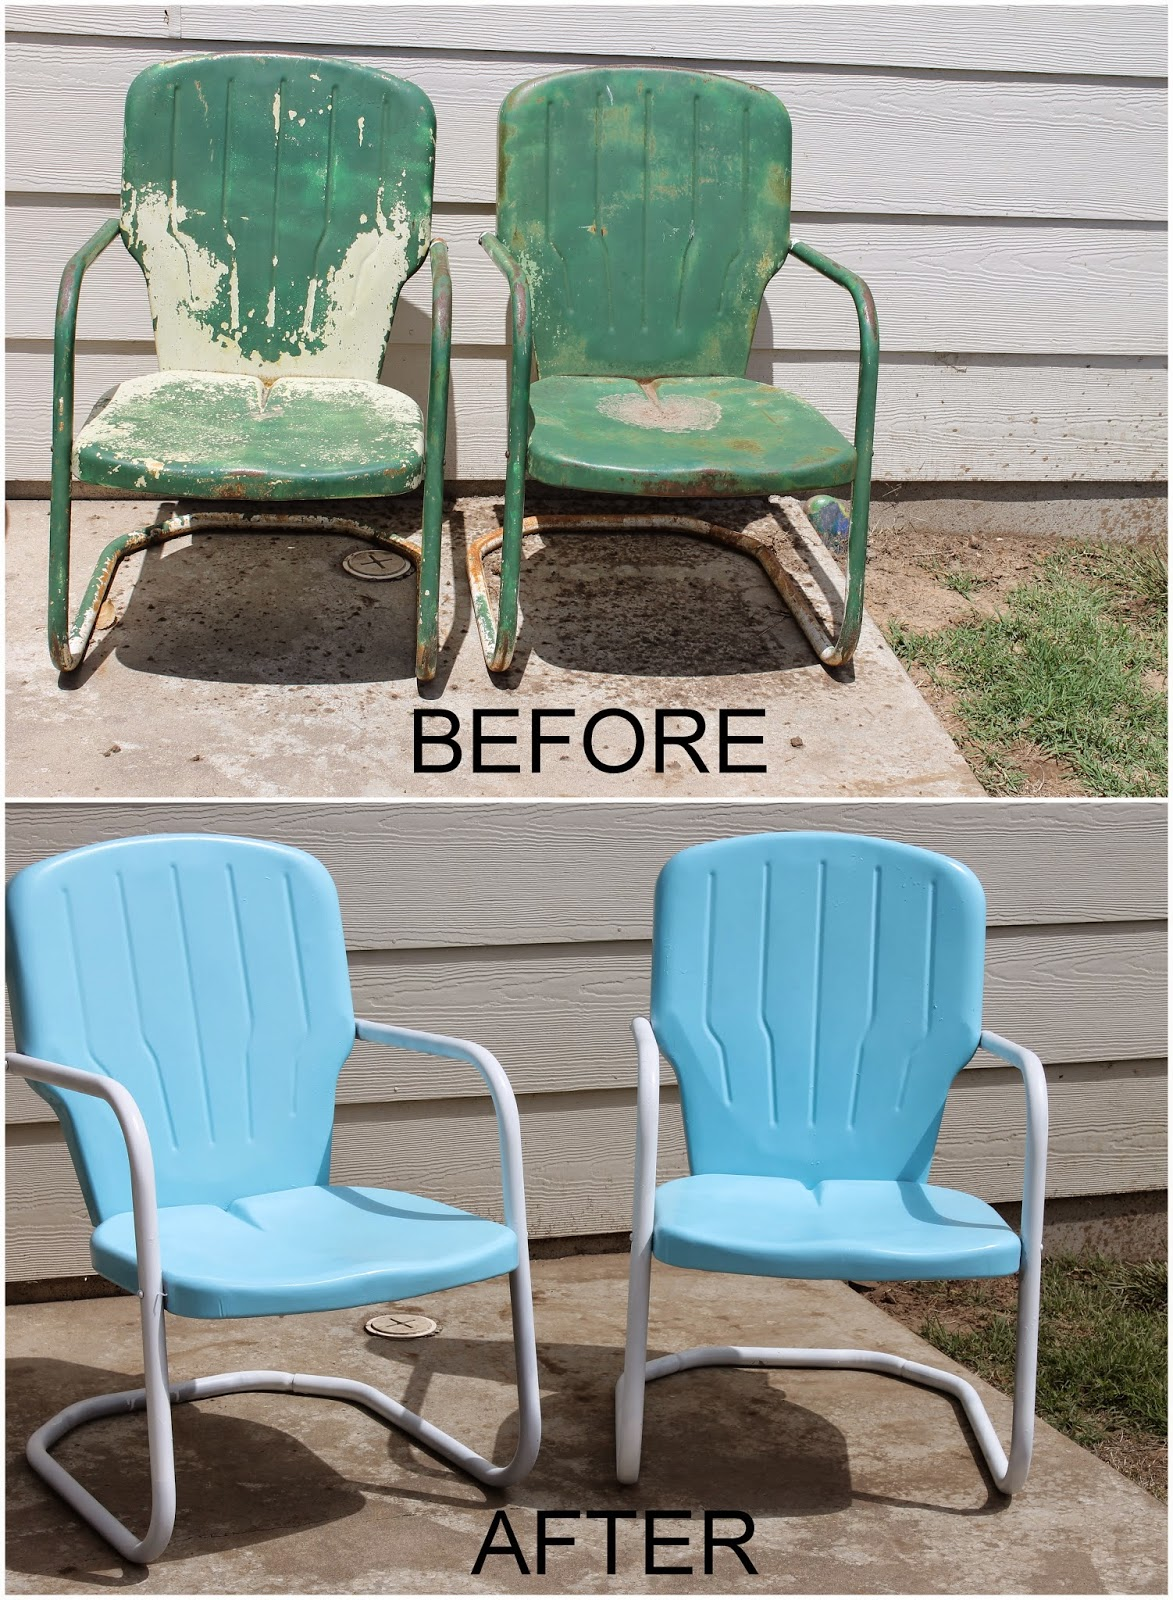 Repaint Old Metal Patio Chairs DIY Paint Outdoor Metal Motel Chairs DIY Pai